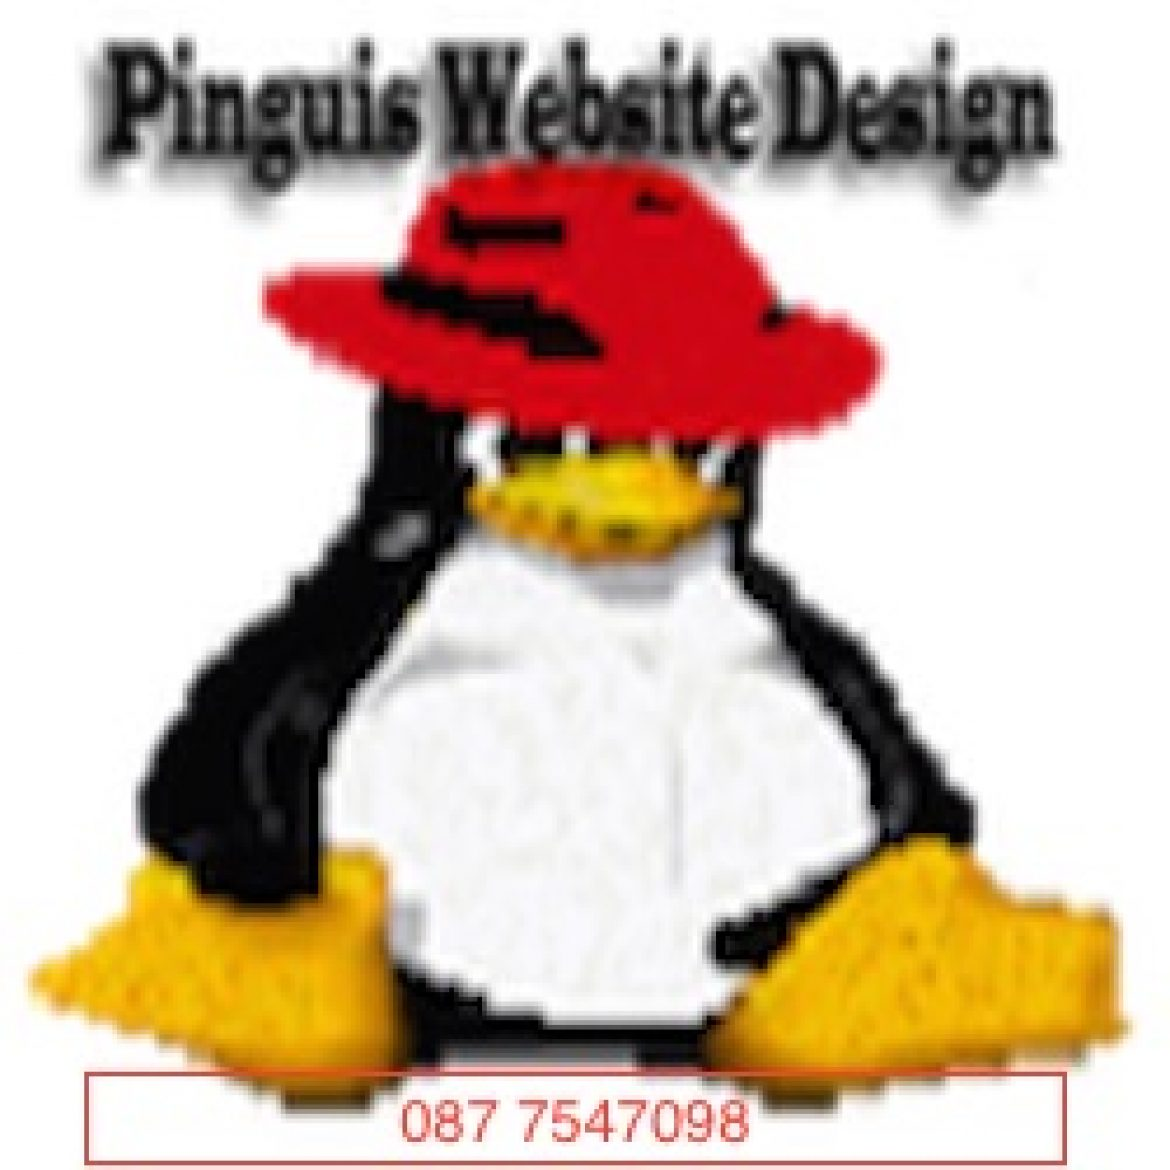 Pinguis Website Design Client SEO